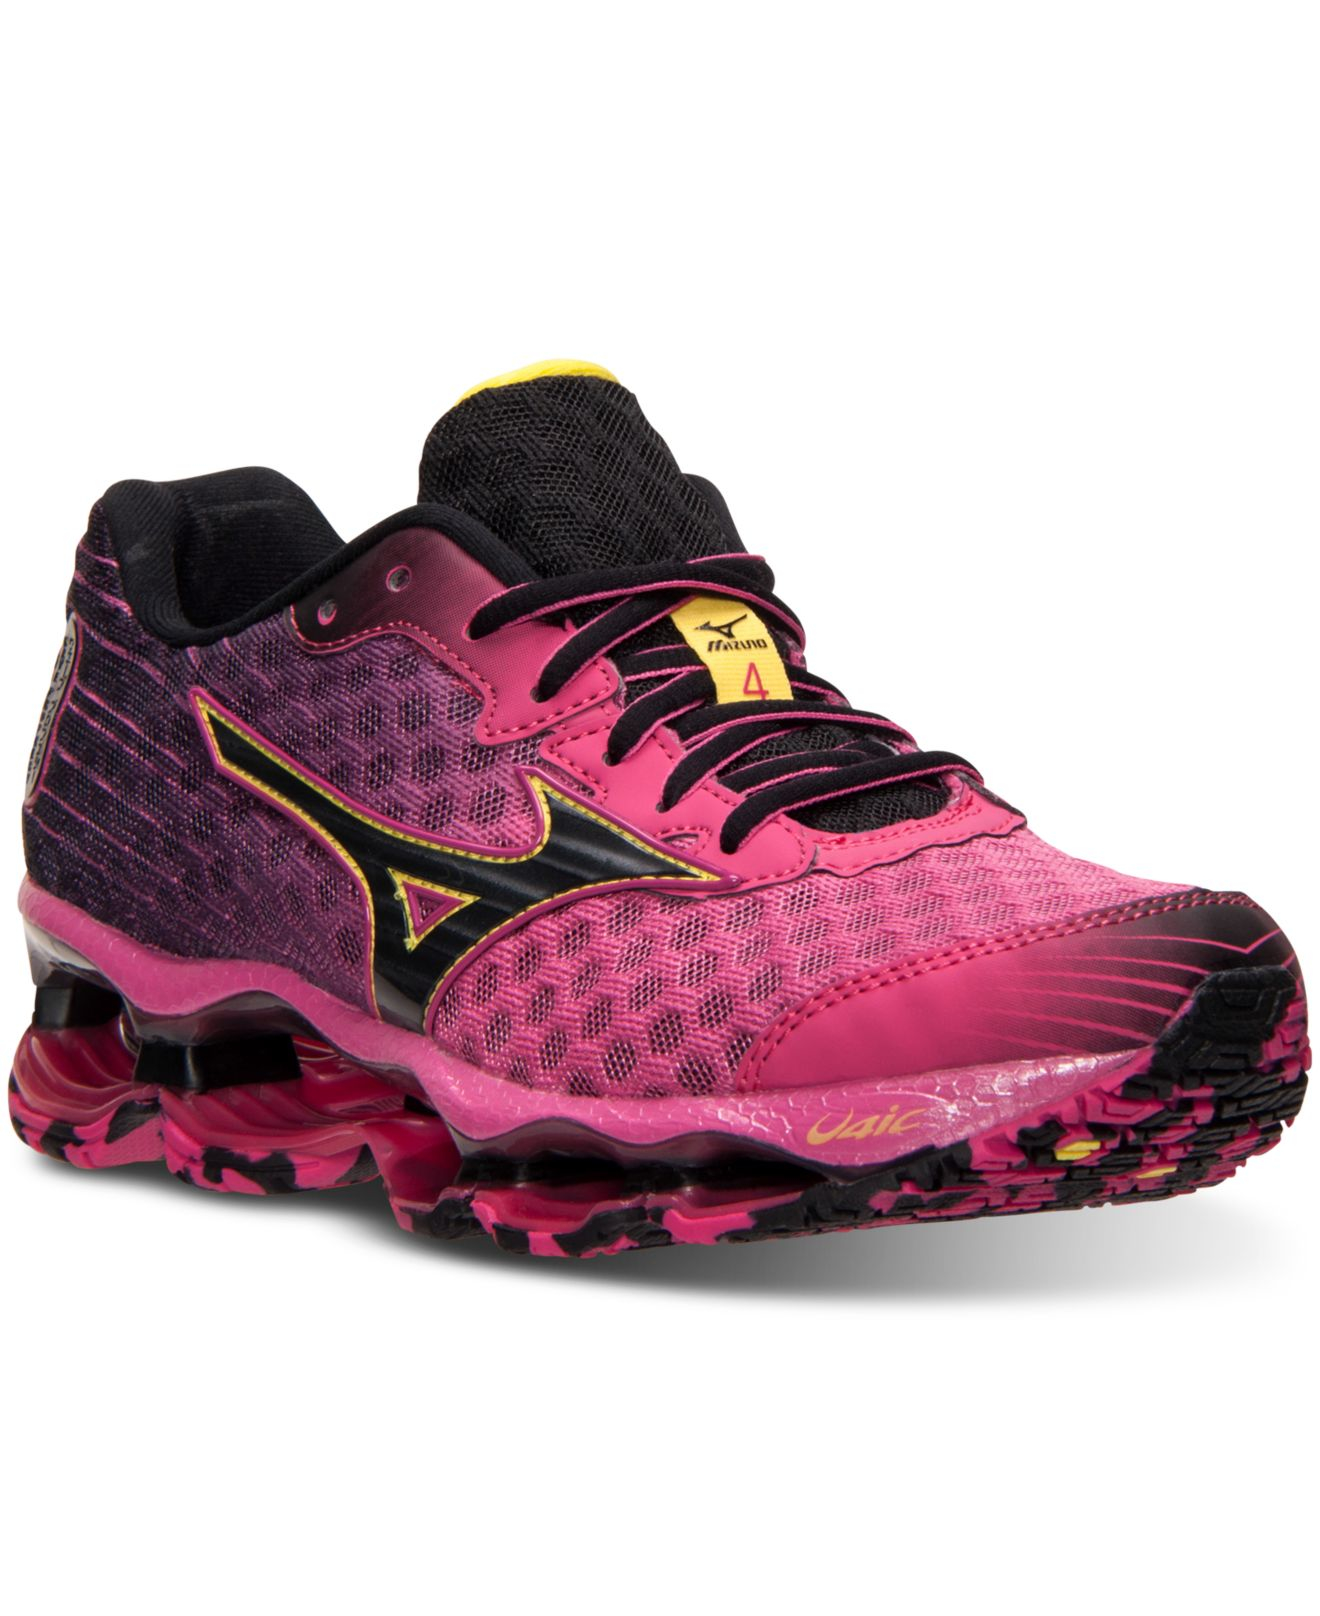 Mizuno Black Womens Shoes